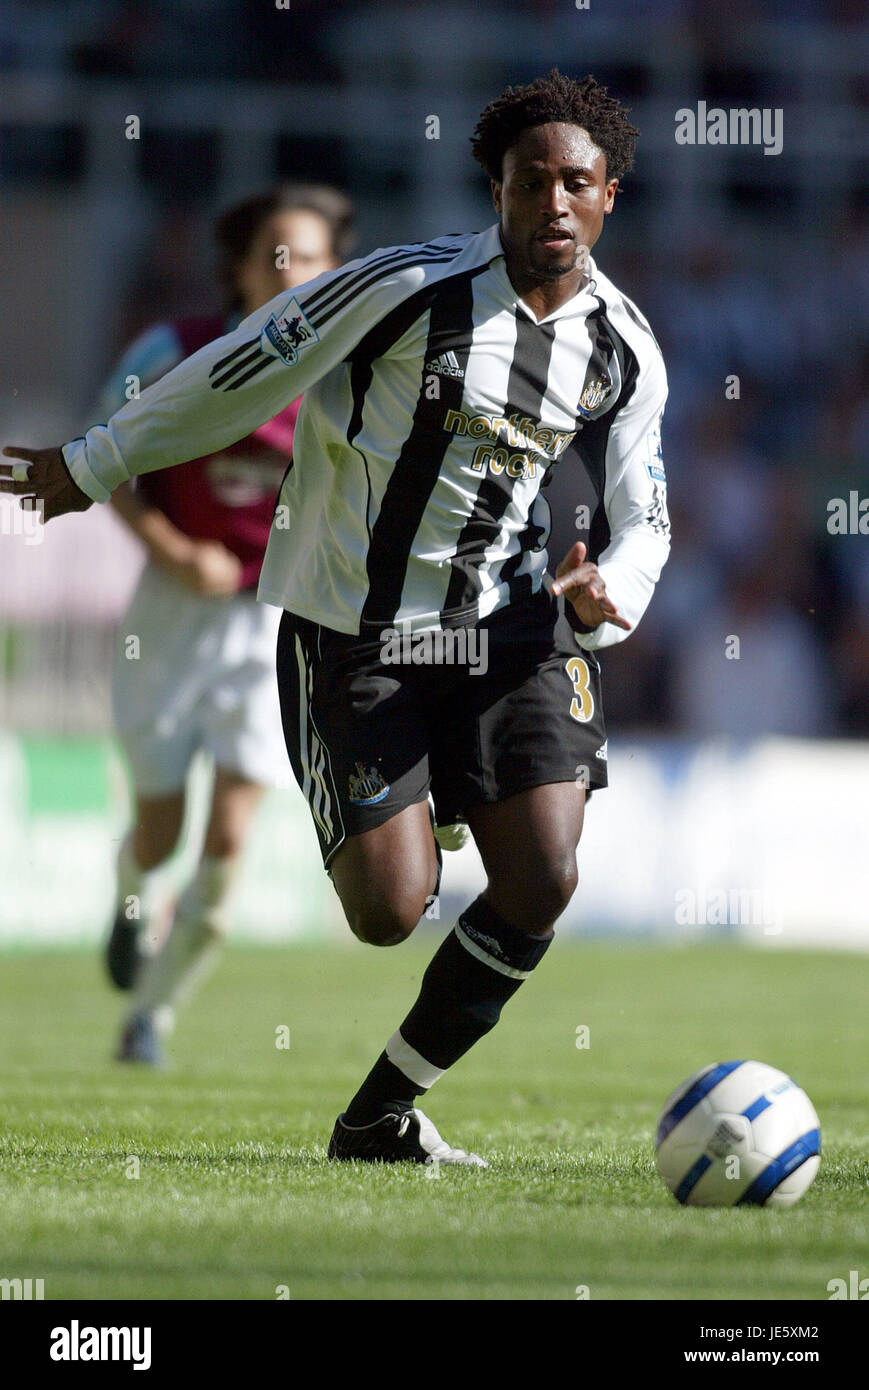 CELESTINE BABAYARO NEWCASTLE UNITED FC ST JAMES PARK NEWCASTLE ENGLAND 20 August 2005 - Stock Image